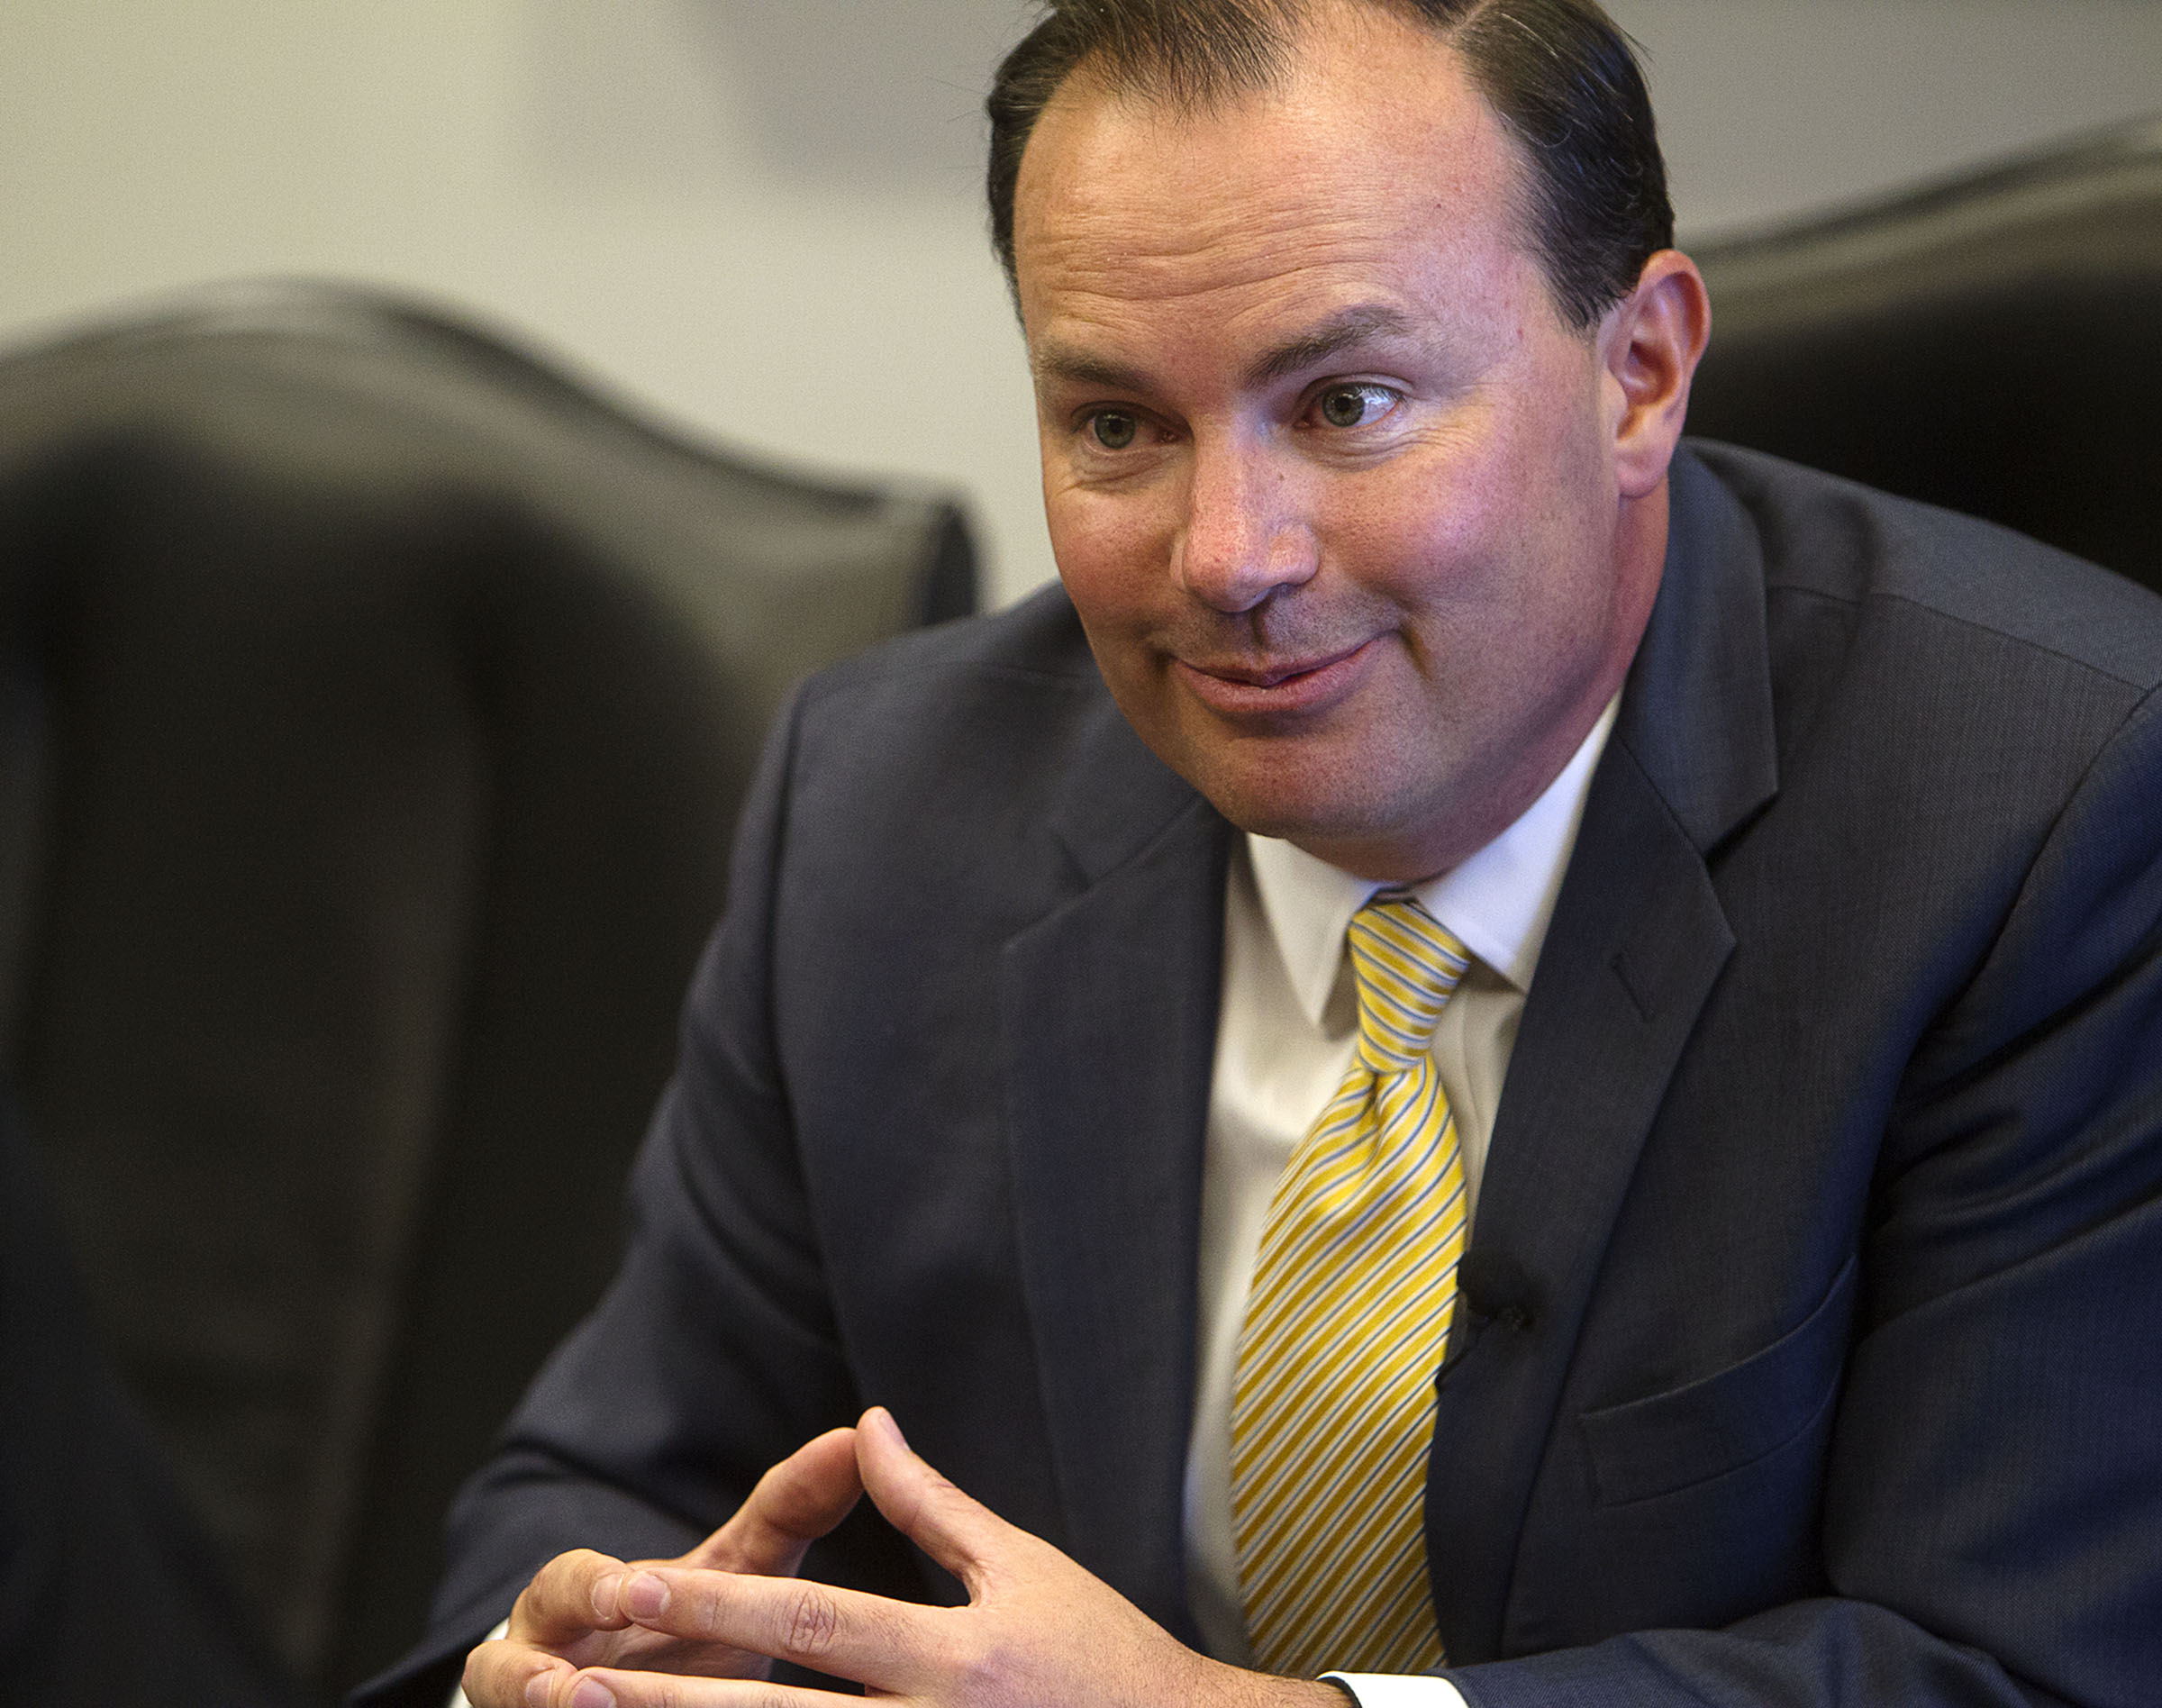 Sen. Mike Lee, R-Utah, meets with reporters and members of the the Deseret News and KSL editorial board in Salt Lake City on Monday, Aug. 29, 2016.